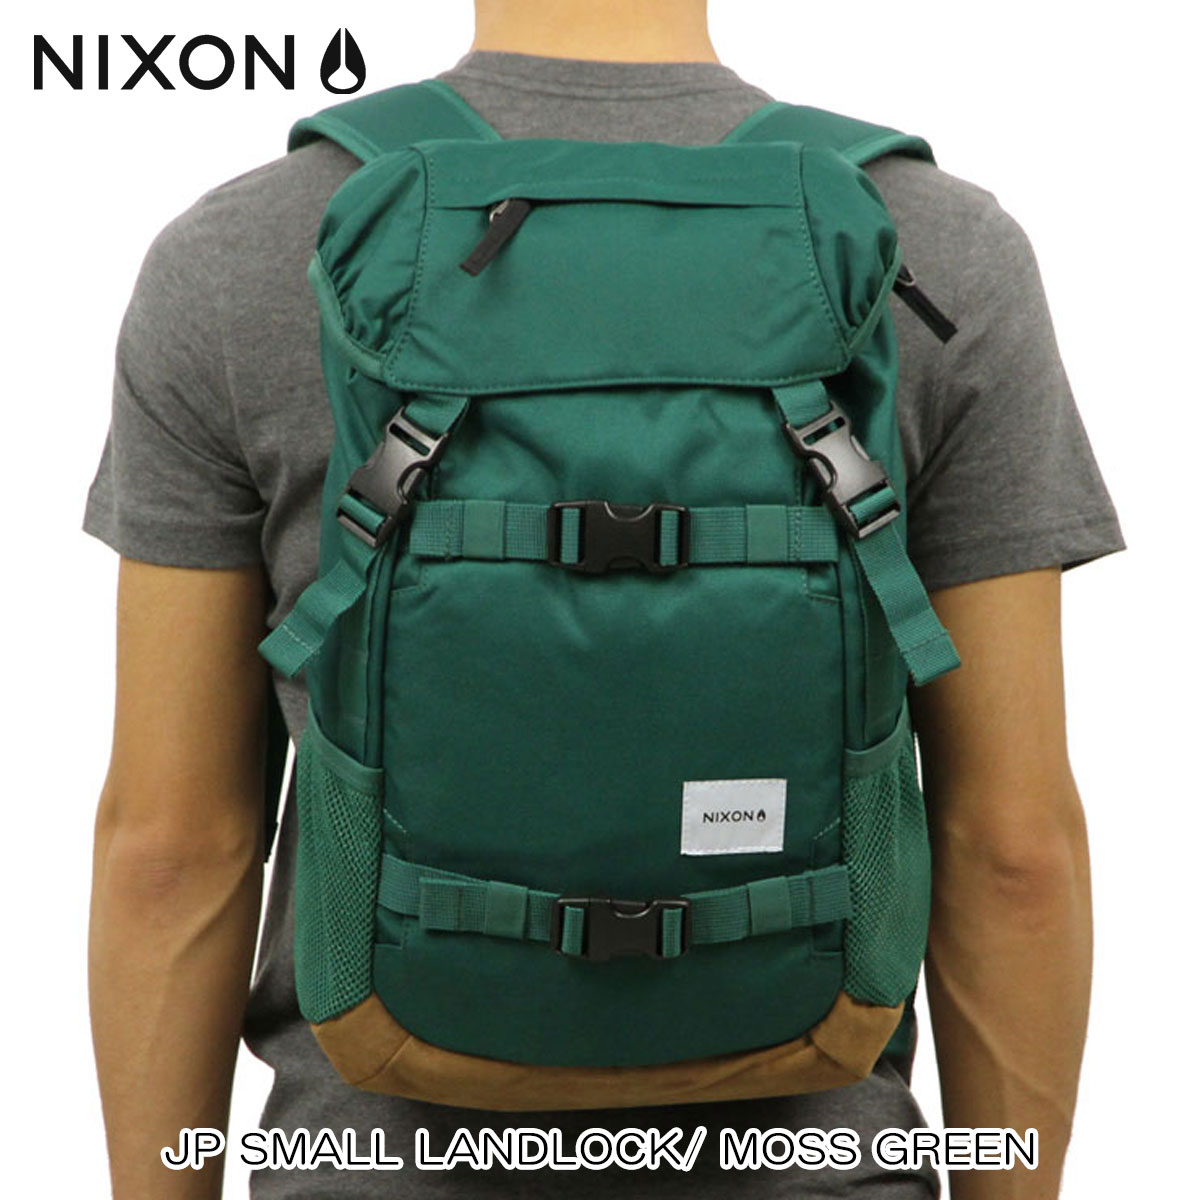 ニクソン NIXON 正規販売店 バッグ JP SMALL LANDLOCK/ MOSS GREEN NC22562328-00 D00S20